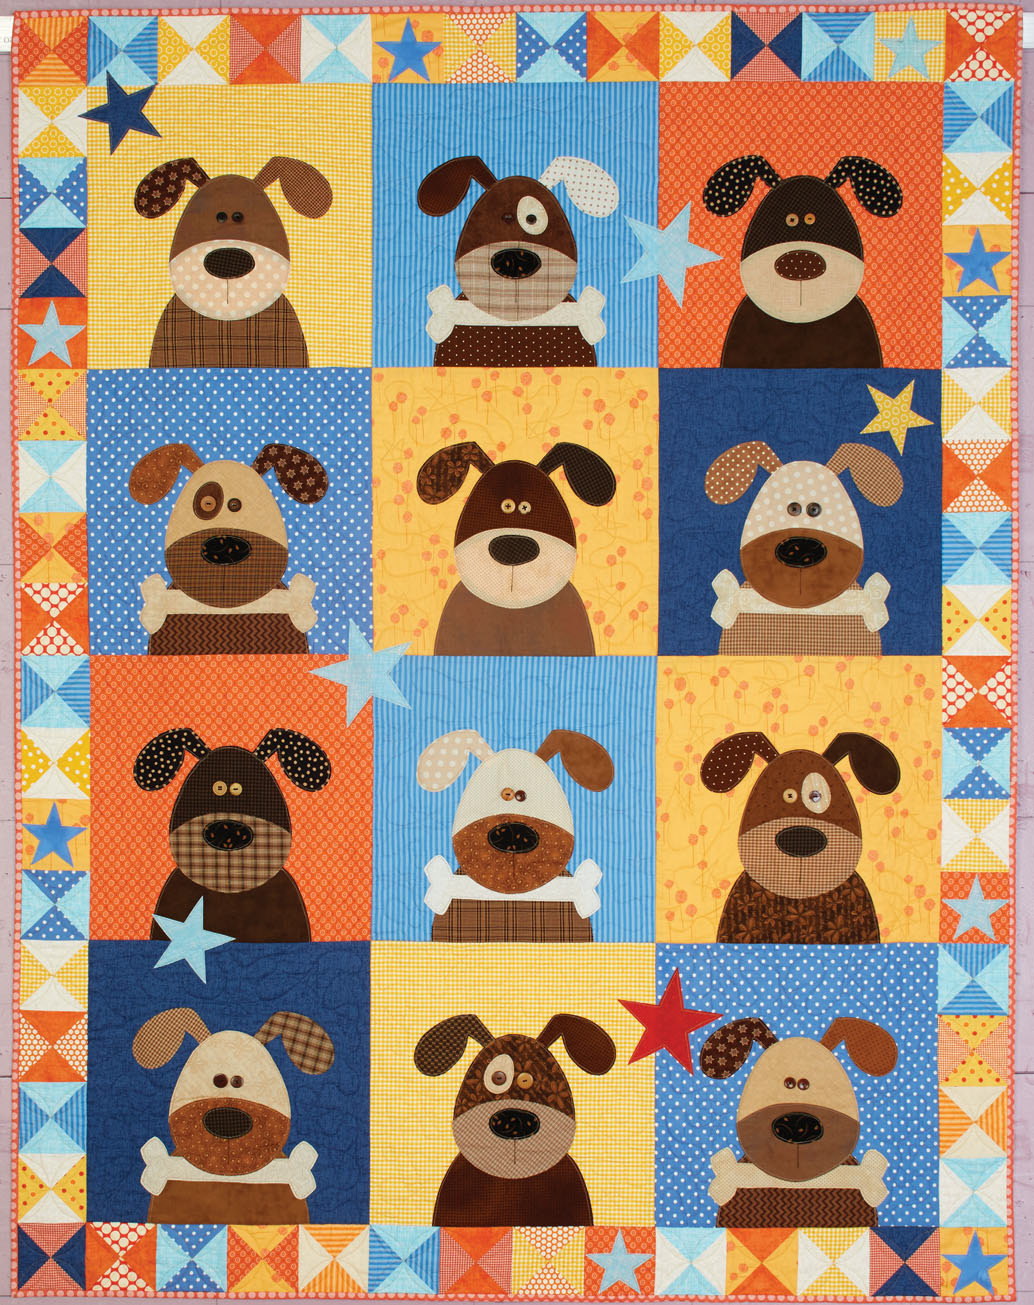 10 Happy Quilts for Kids - The Quilting Company